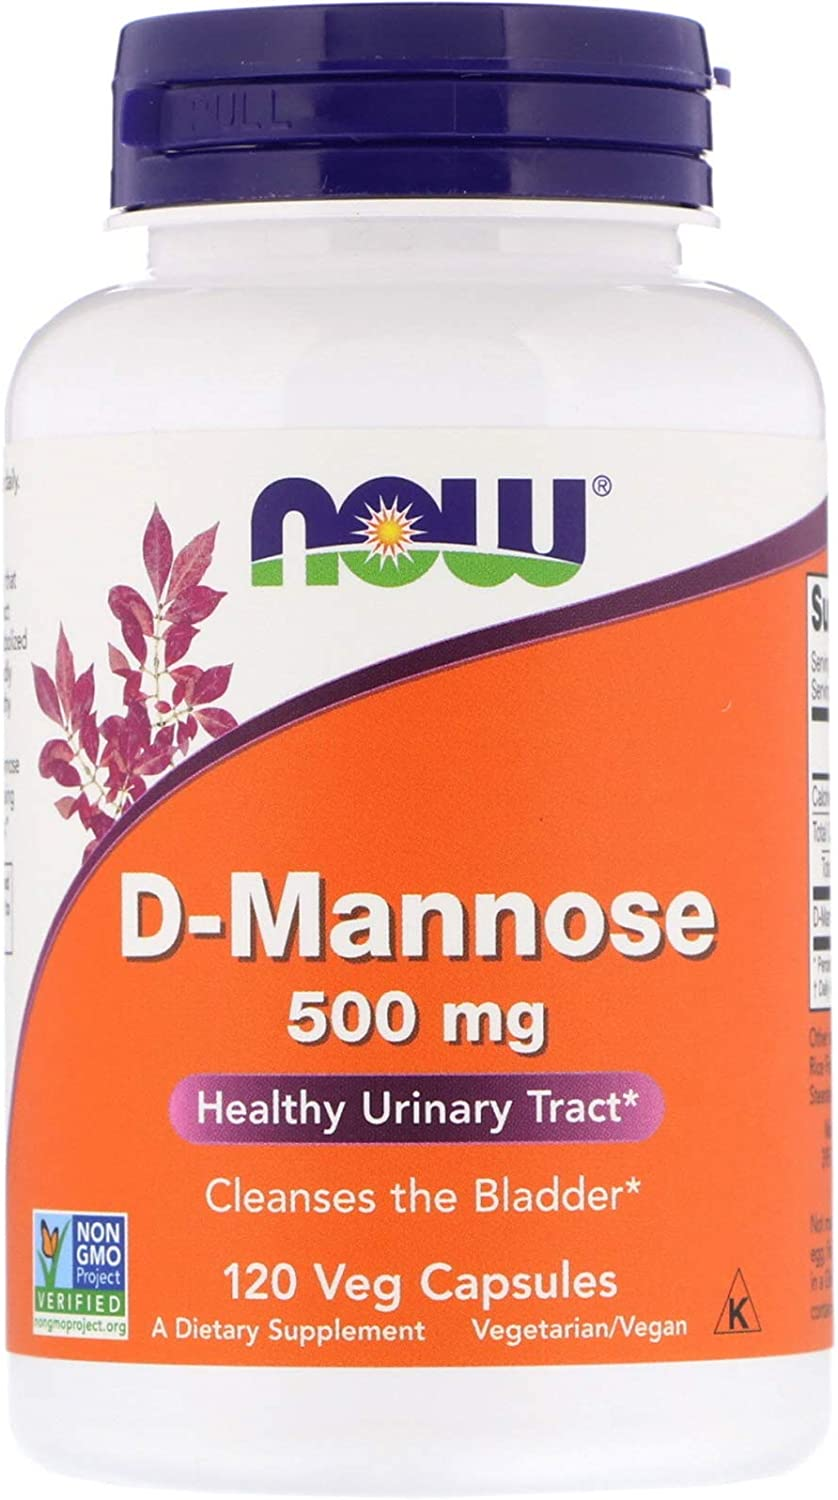 NOW Foods D-Mannose 500 mg, 120 Vegetable Capsule (2 Pack): Health & Personal Care